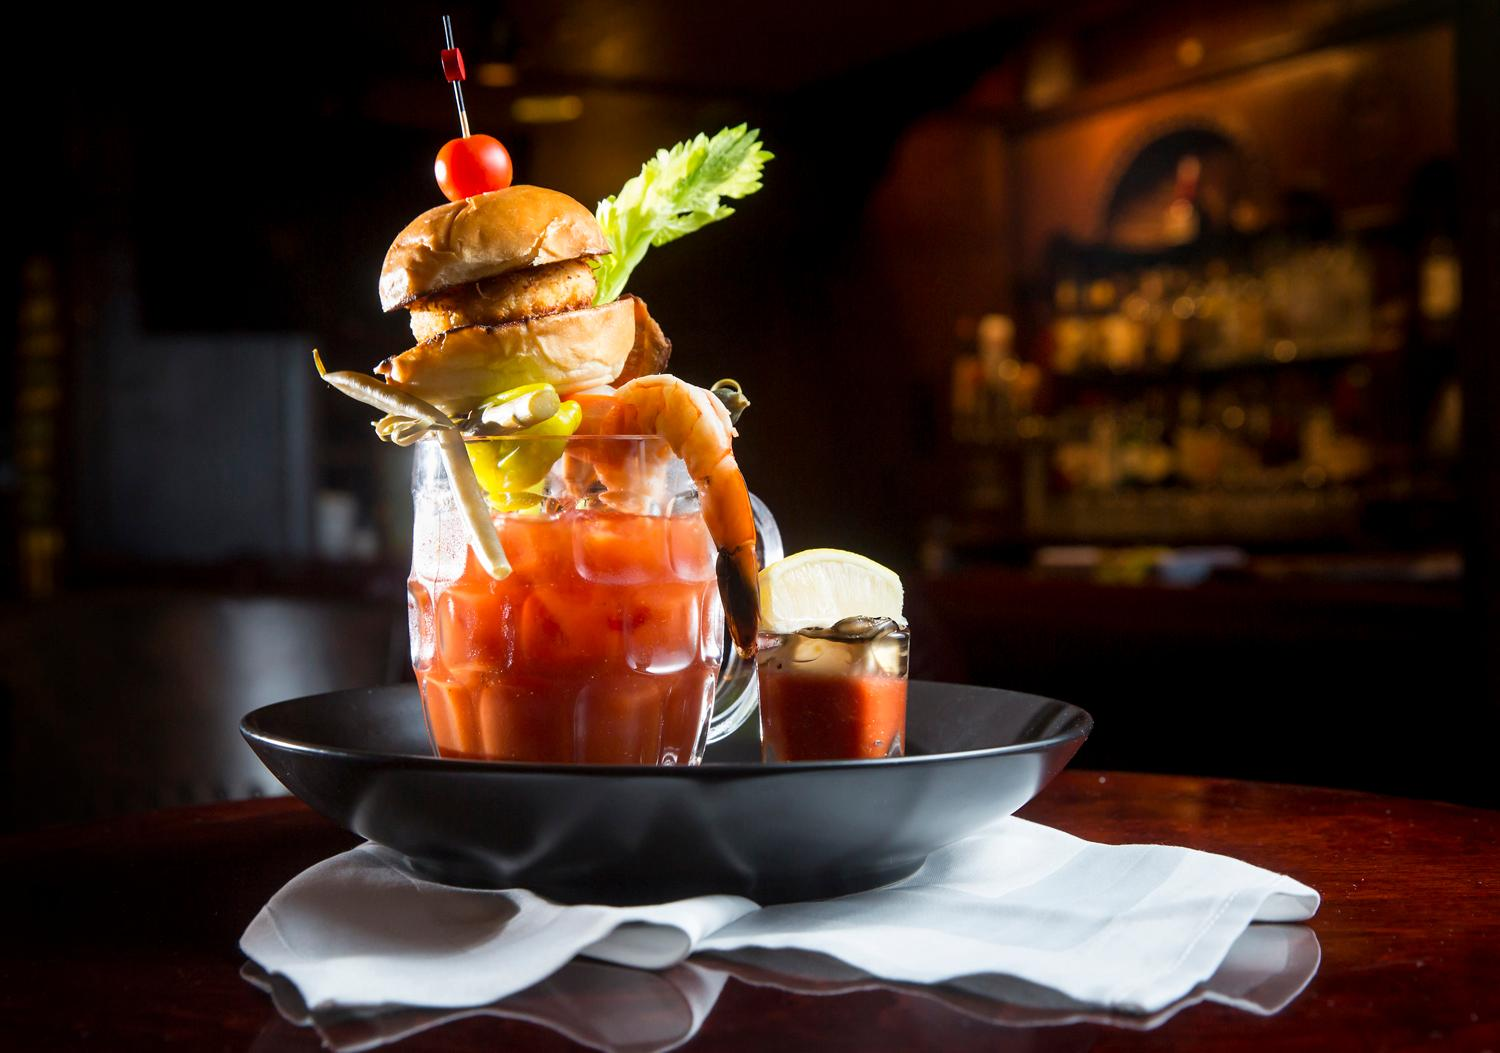 The 12th Fan Bloody Mary includes 12 specialty ingredients including a crab-cake slider, tiger prawn, and oyster shooter, which is featured on Shuckers' game day brunch menu. You can find this beauty at the Fairmont Olympic Hotel at 411 University St, Seattle, WA 98101. (Sy Bean / Seattle Refined)